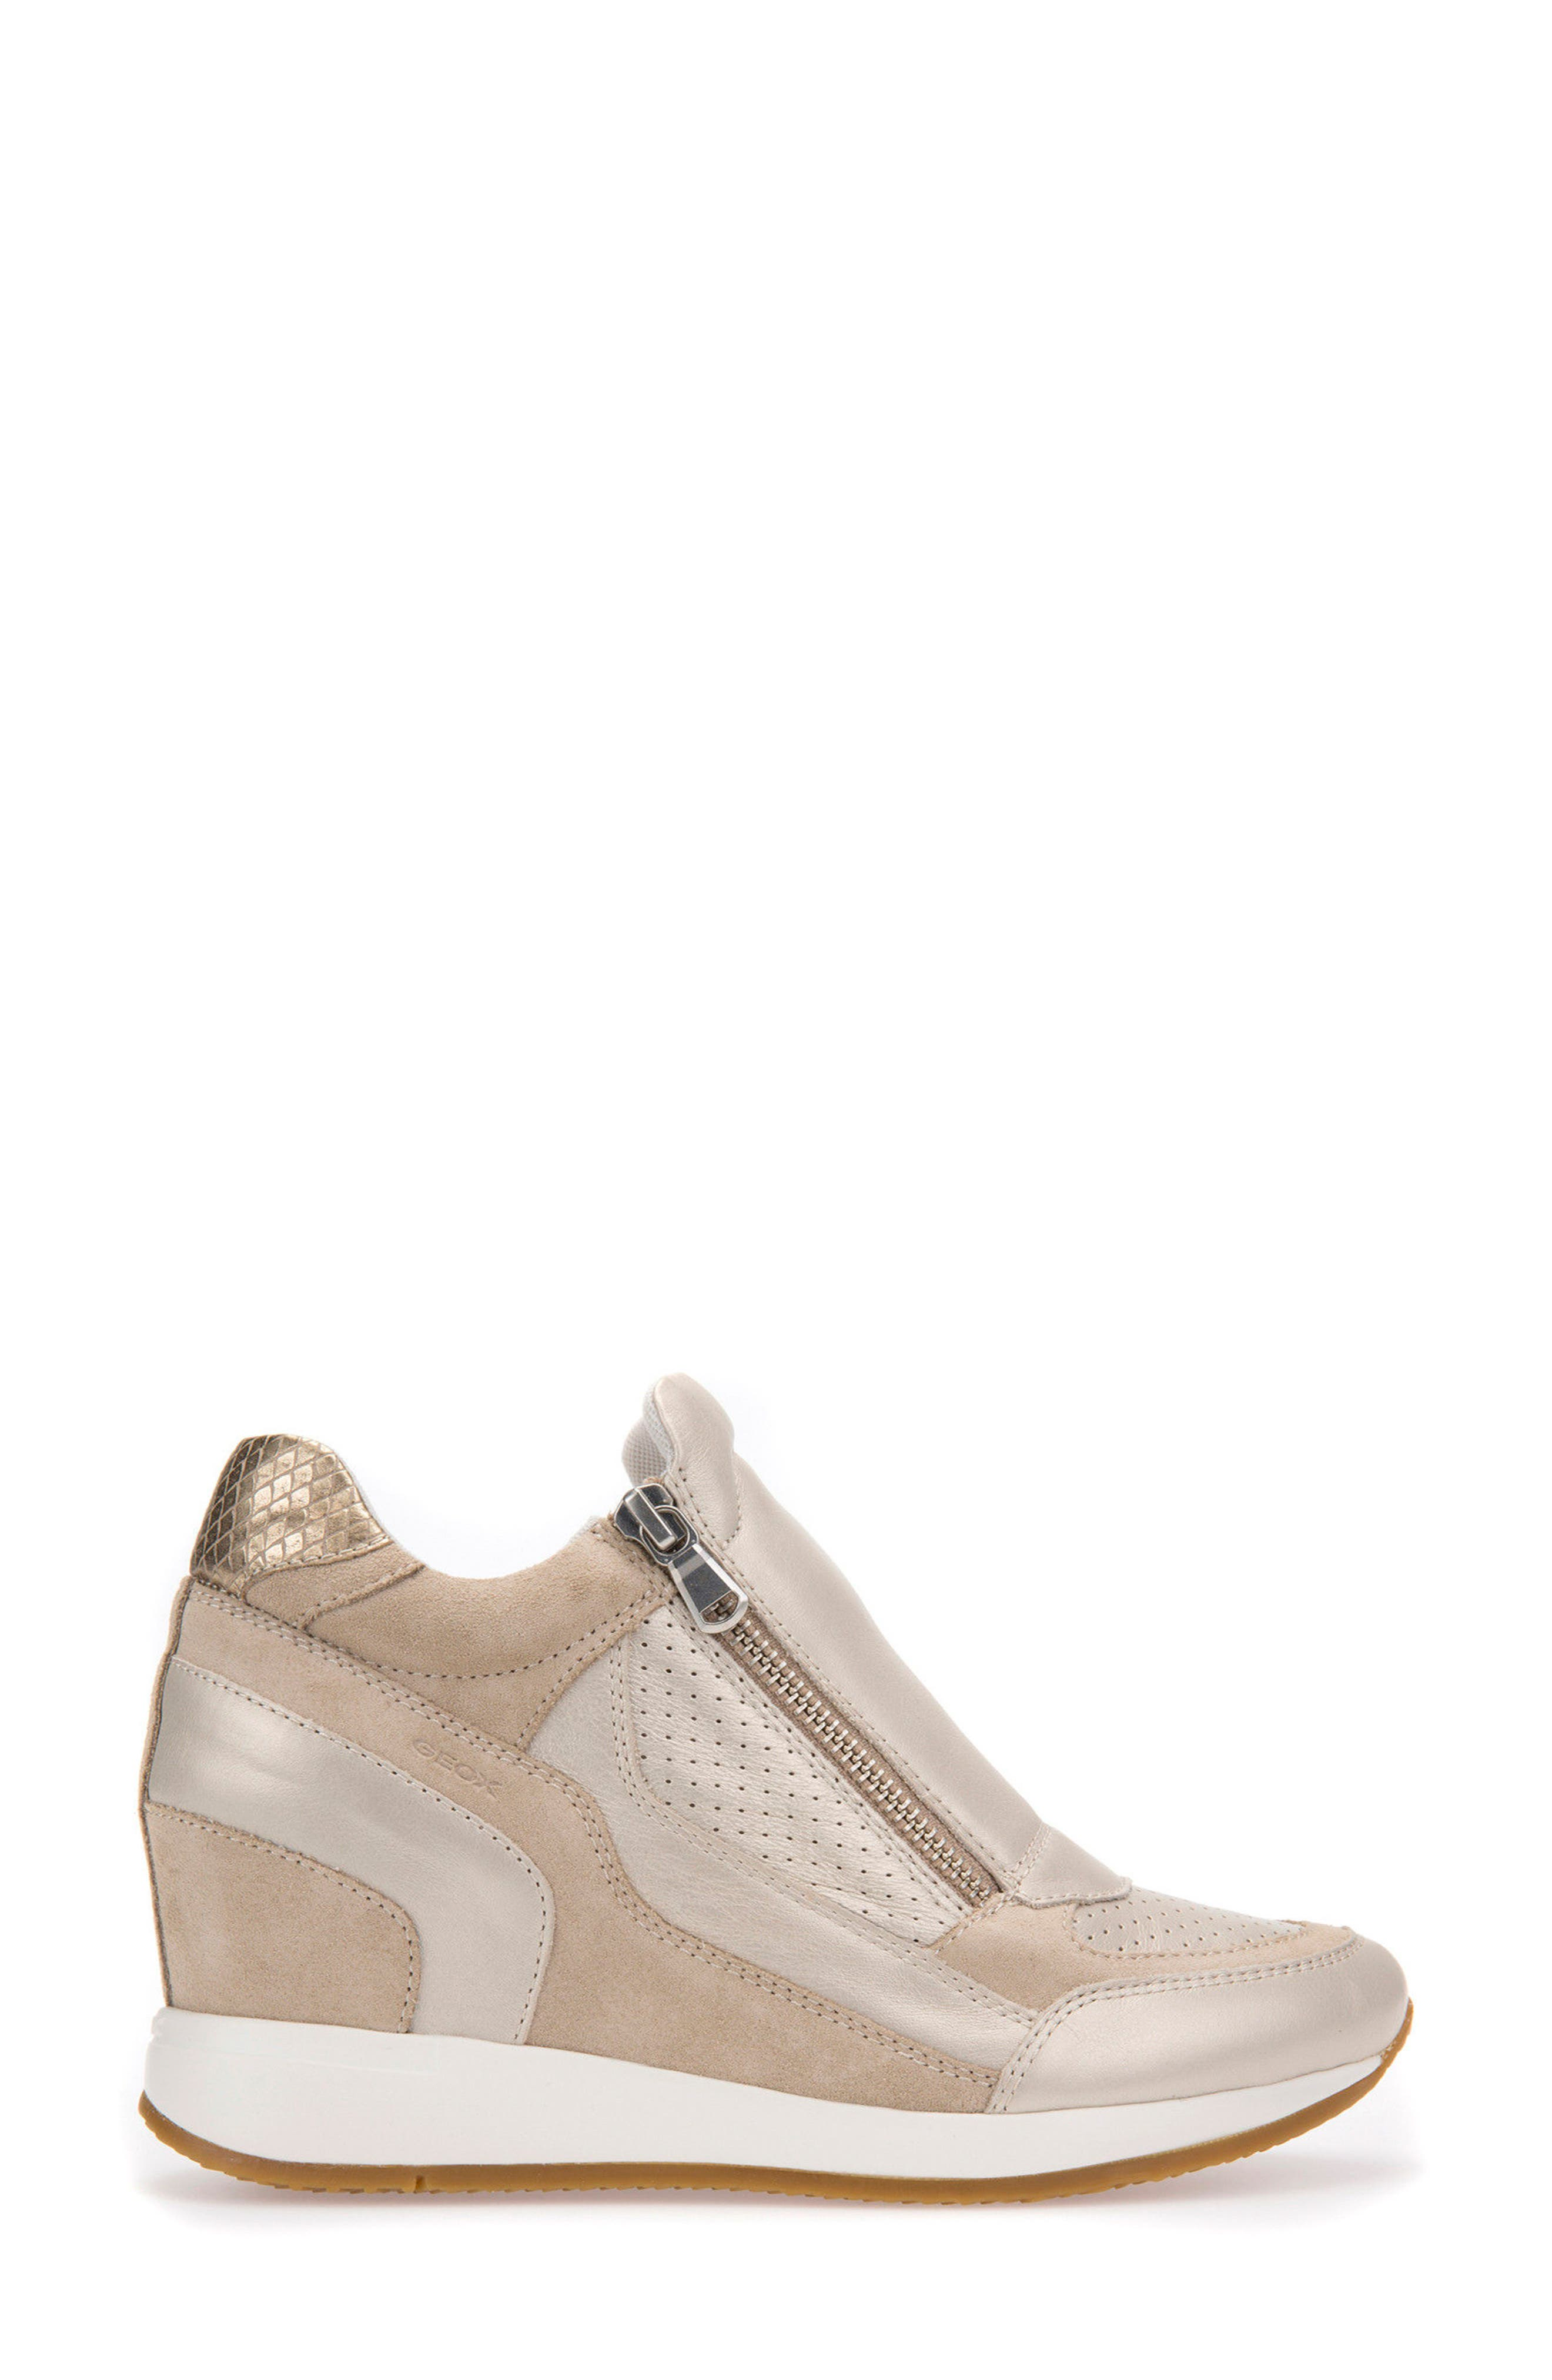 Nydame Wedge Sneaker,                             Alternate thumbnail 3, color,                             PLATINUM LEATHER